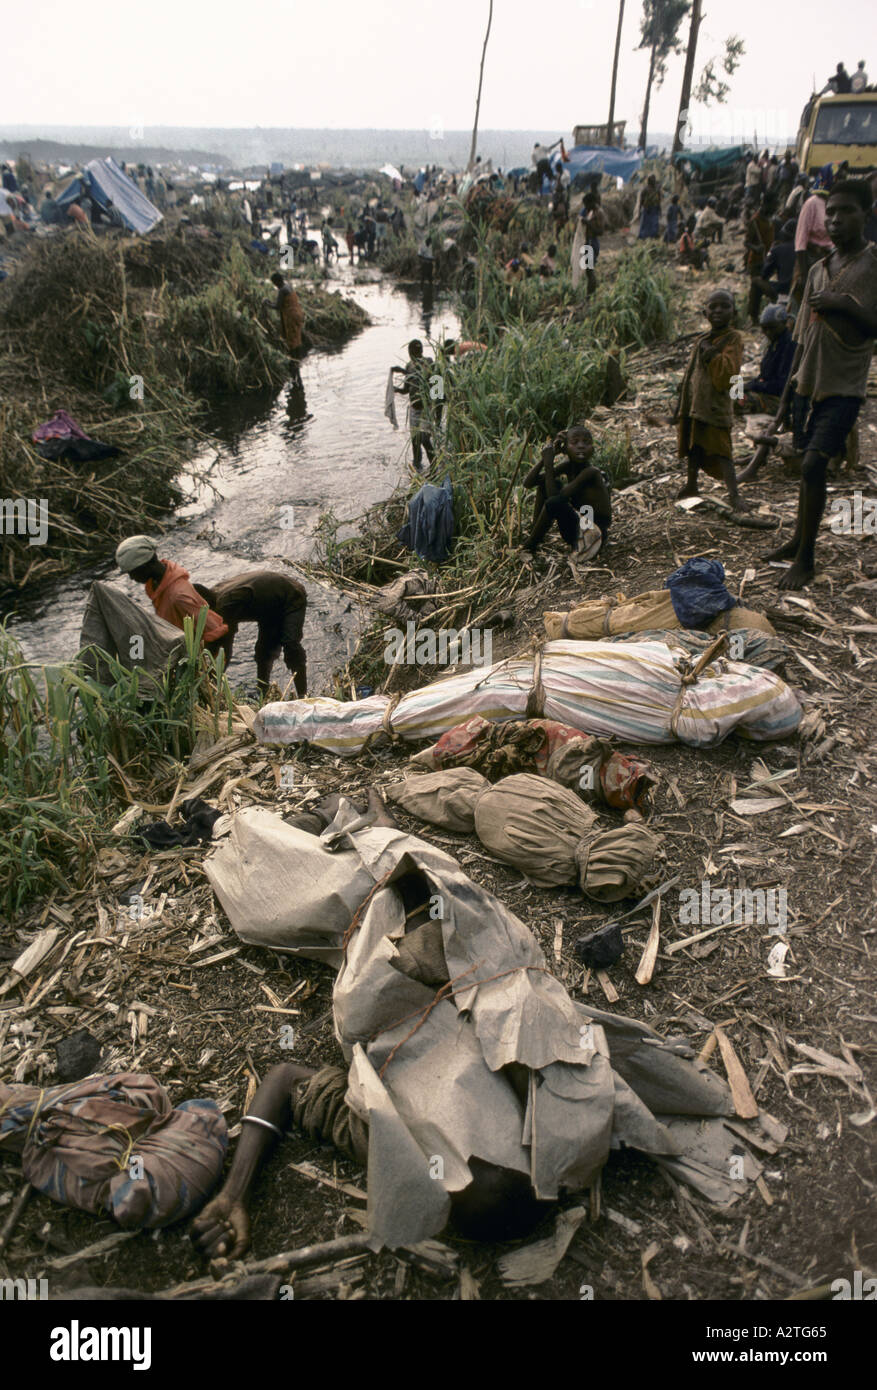 rwandan refugees july 1994 dead bodies of children adults wrapped in cloth paper laid out on the banks of a stream where people are washing clothes katali refugee camp - Stock Image